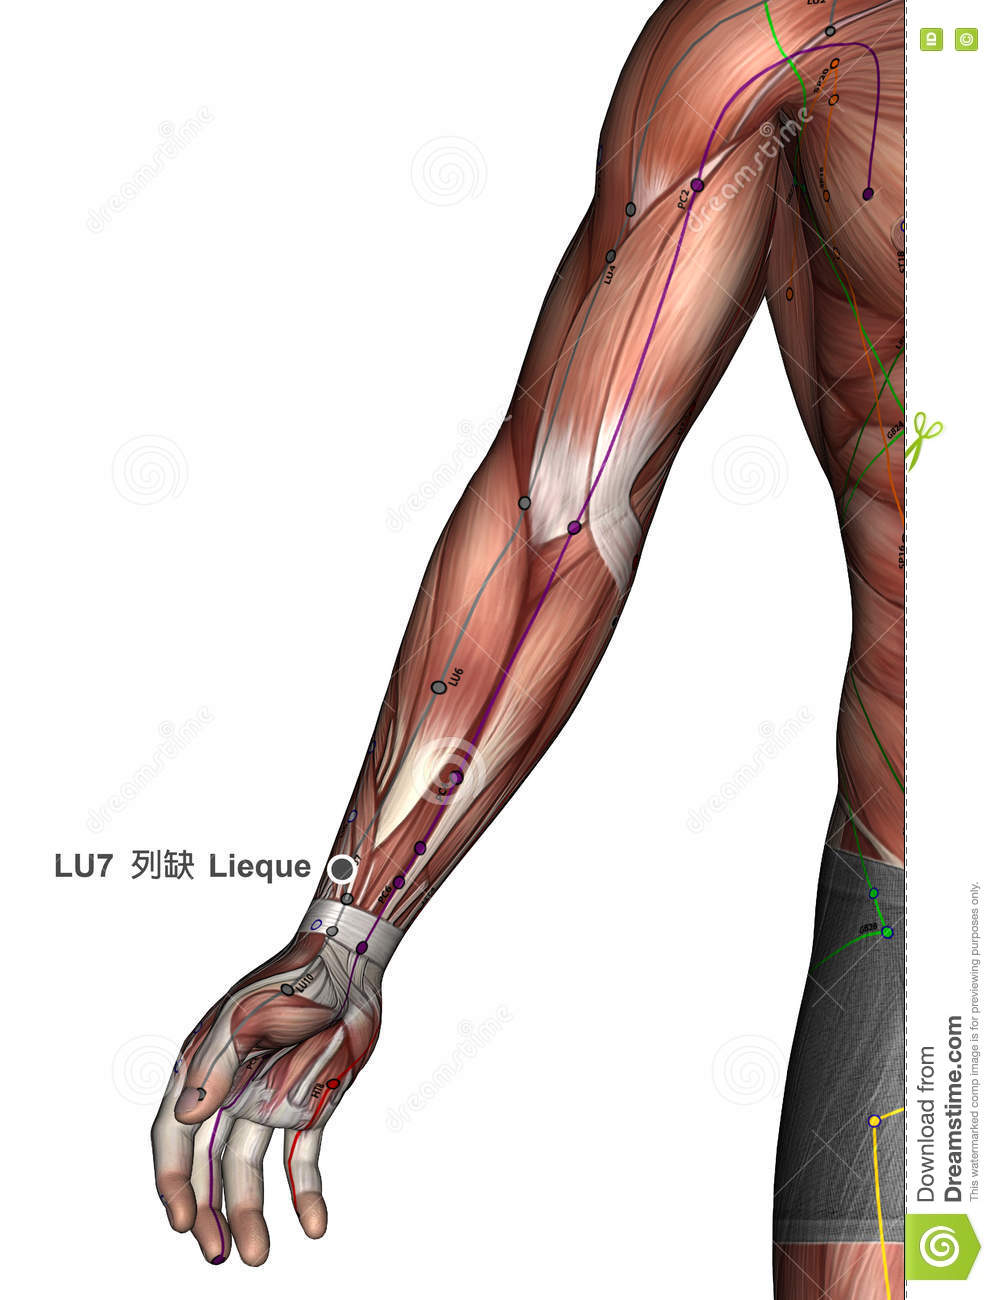 Acupuncture Point LU7 Lieque, 3D Illustration Stock